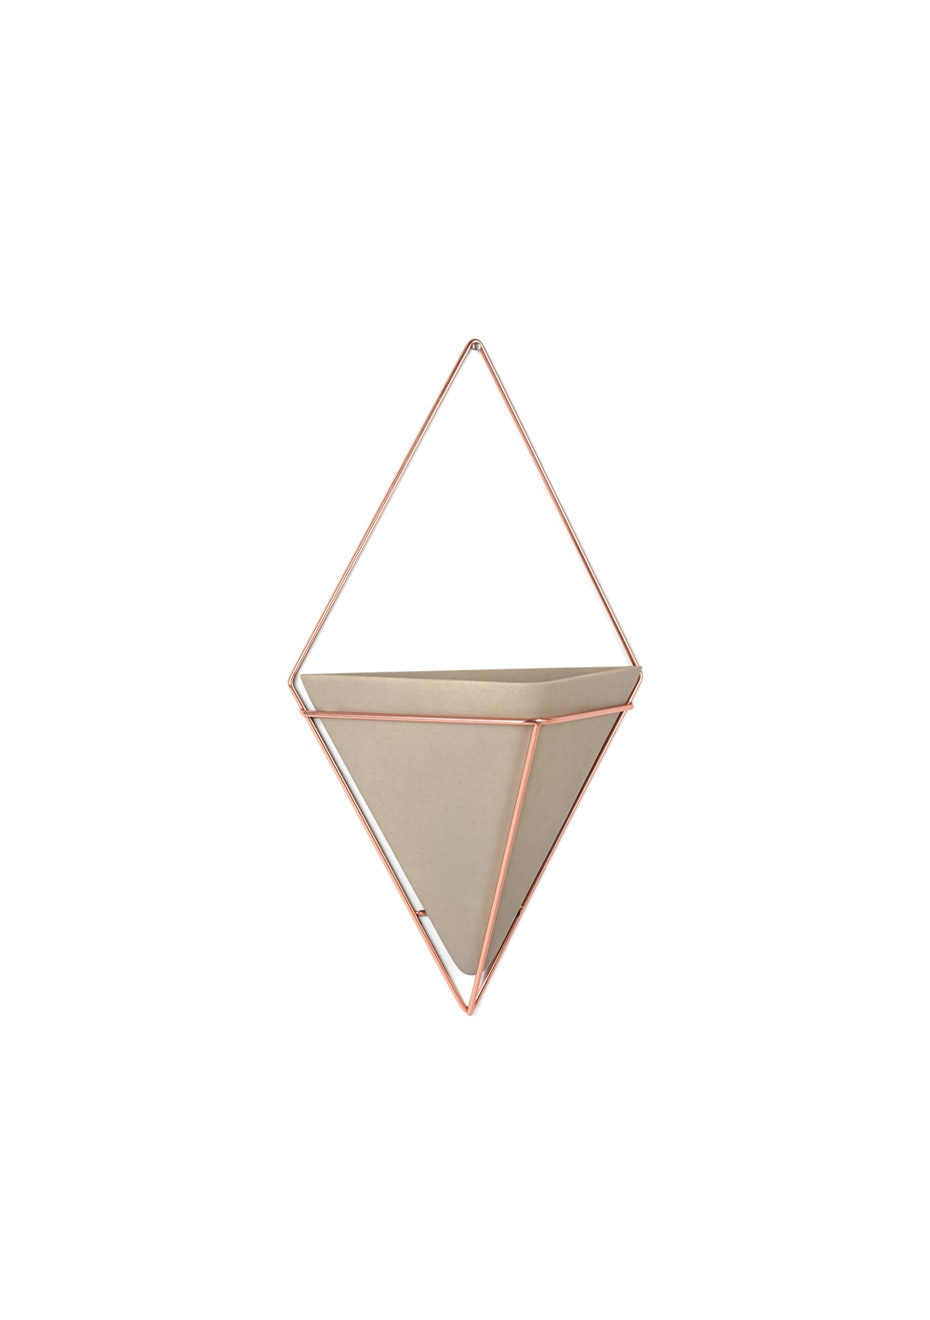 Umbra - Trigg - Geo Wall Vessel - Set of 2 - Concrete/copper